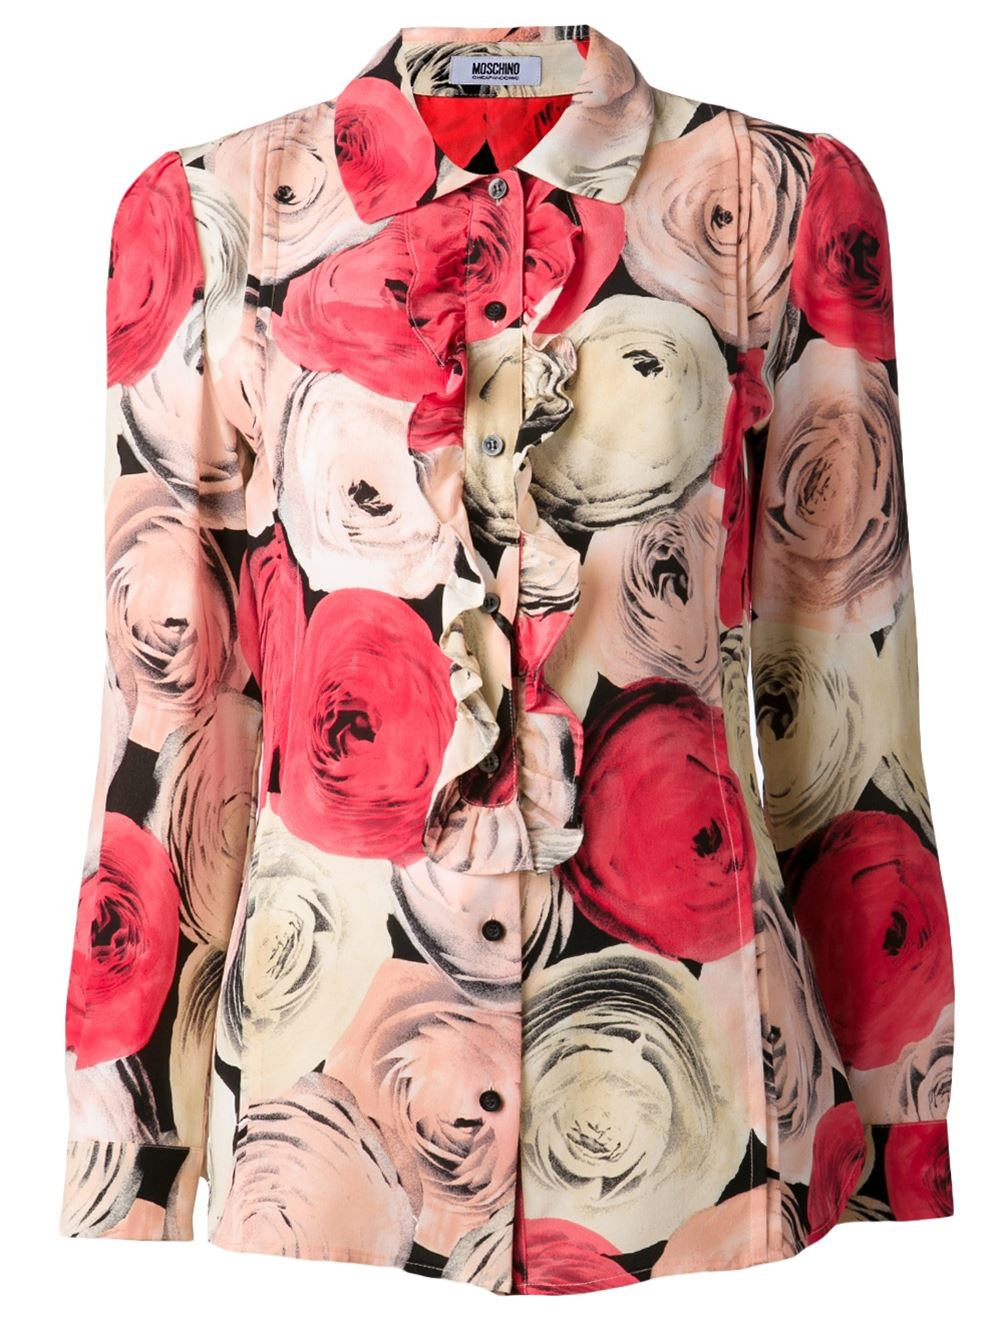 Red silk rose print blouse from Moschino Cheap Chic